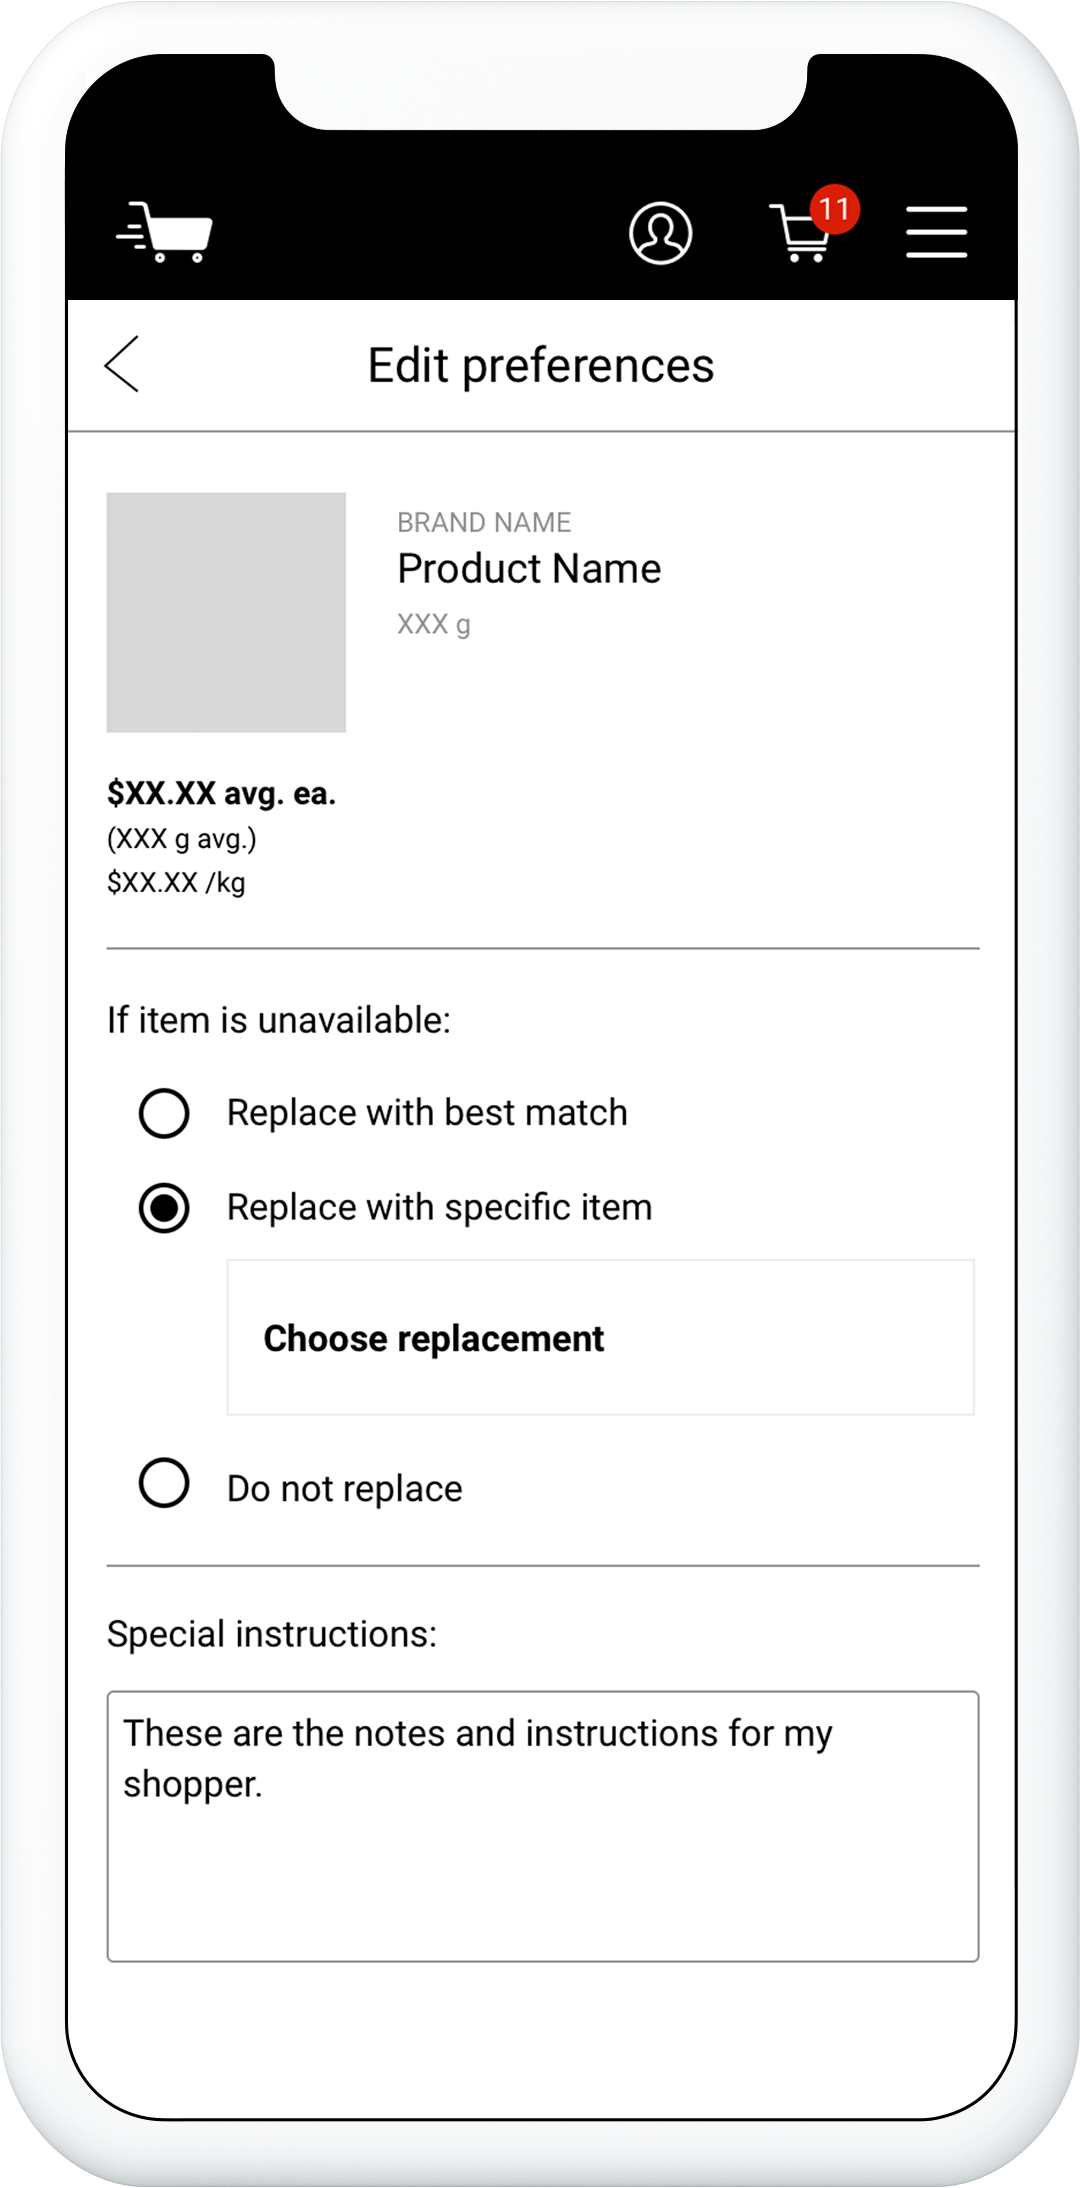 First prototype, edit preferences screen